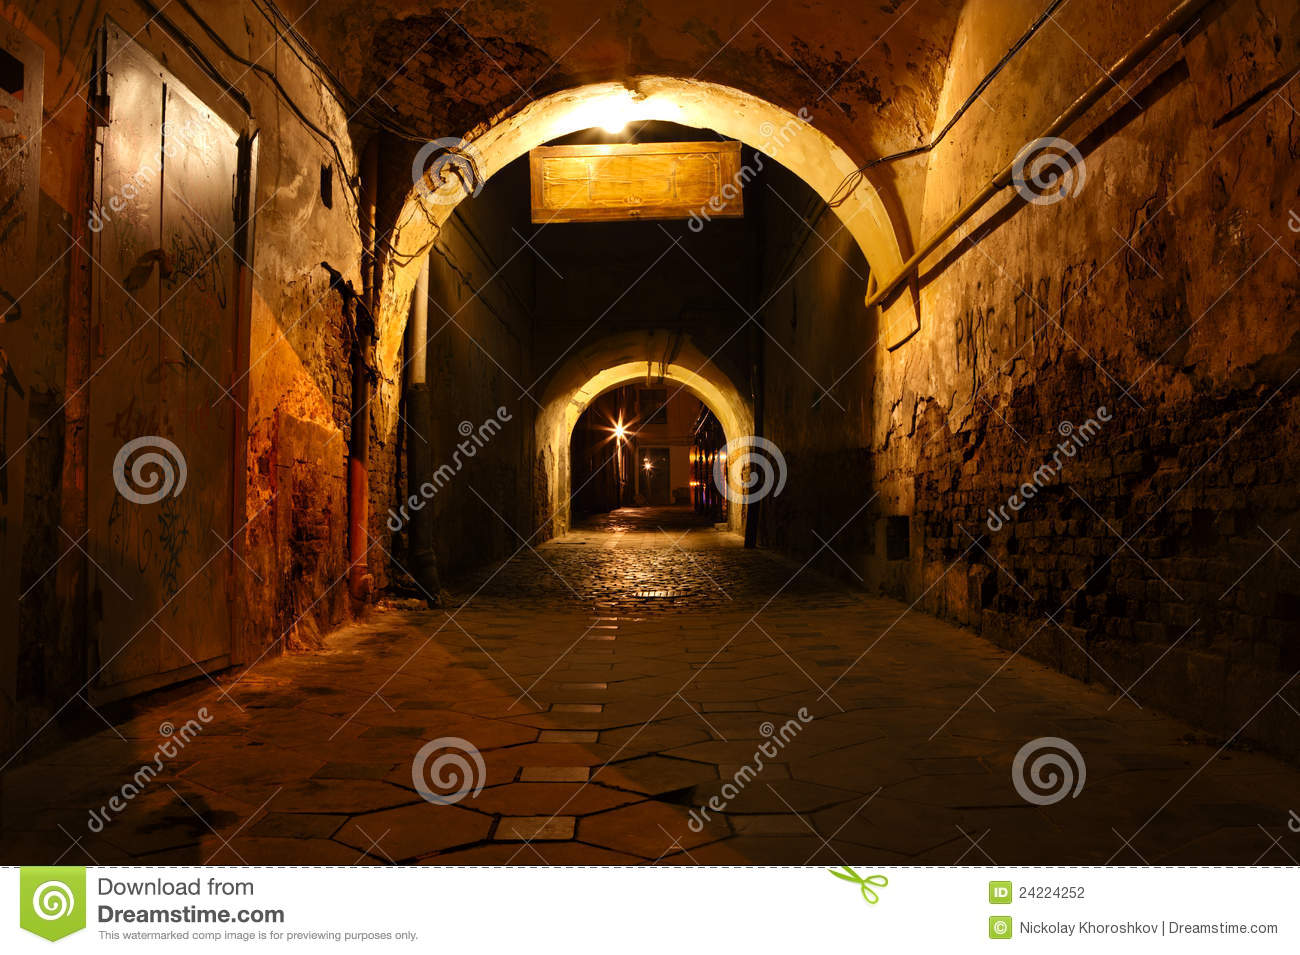 Download Dirty street stock photo. Image of passage, night, brick - 24224252